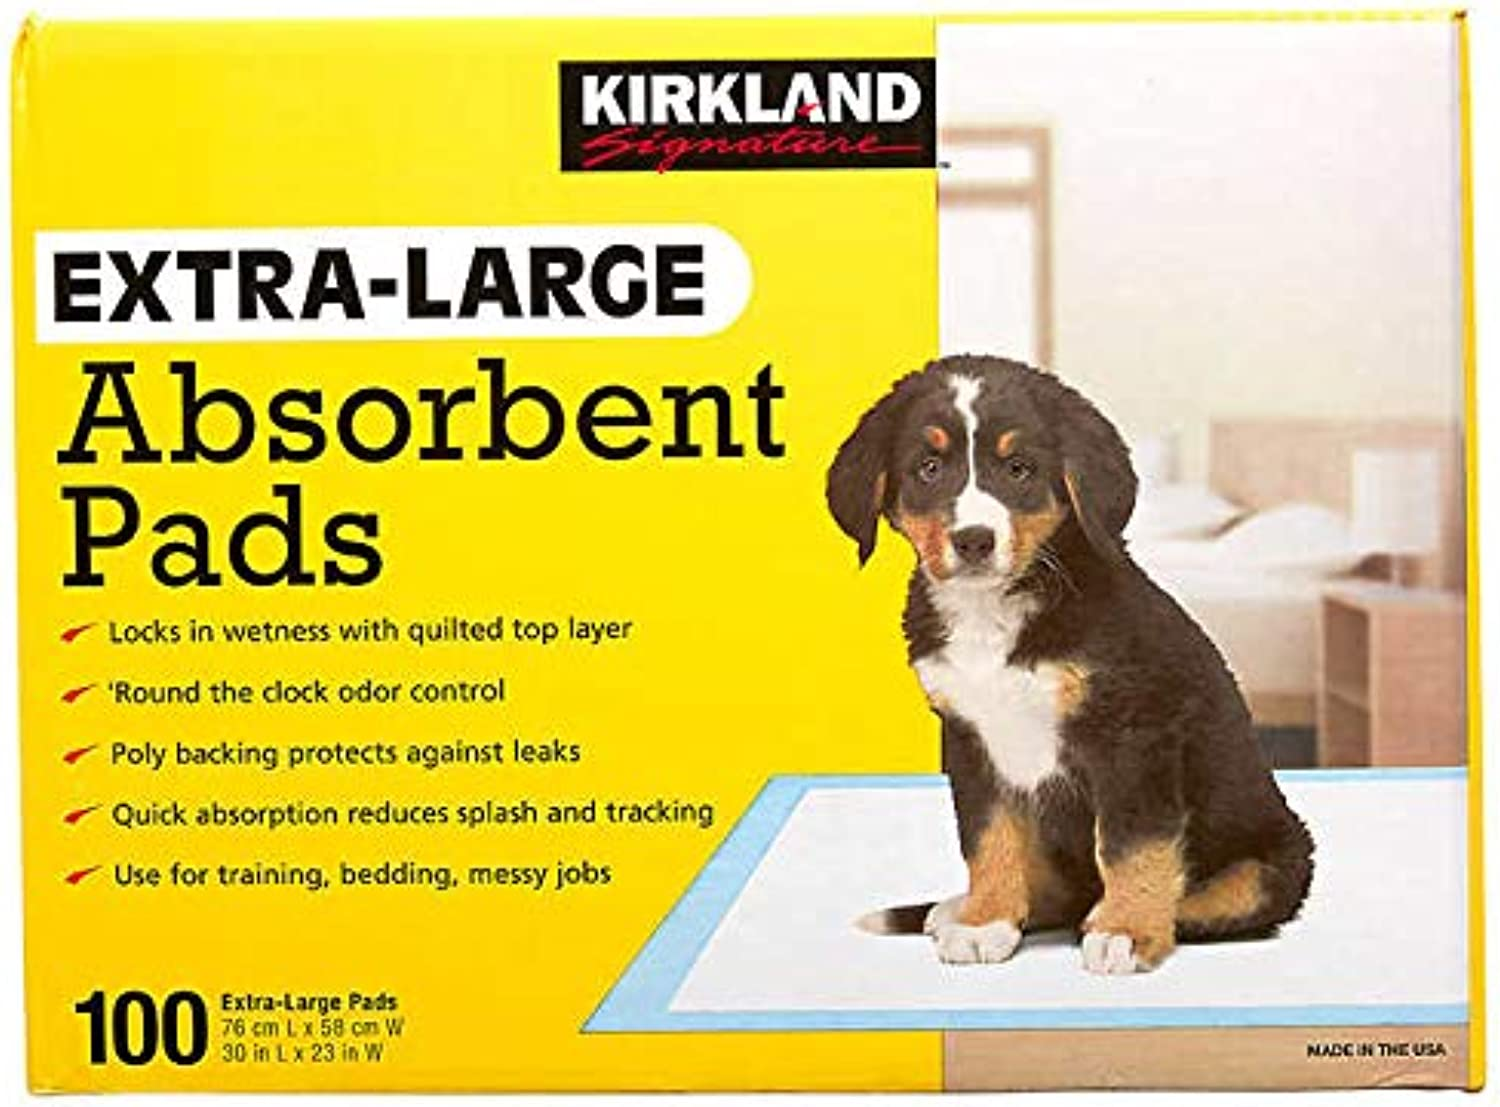 Kirkland Signature Expect More ExtraLarge Absorbent Pads, 30 in L X 23 in W, 100count